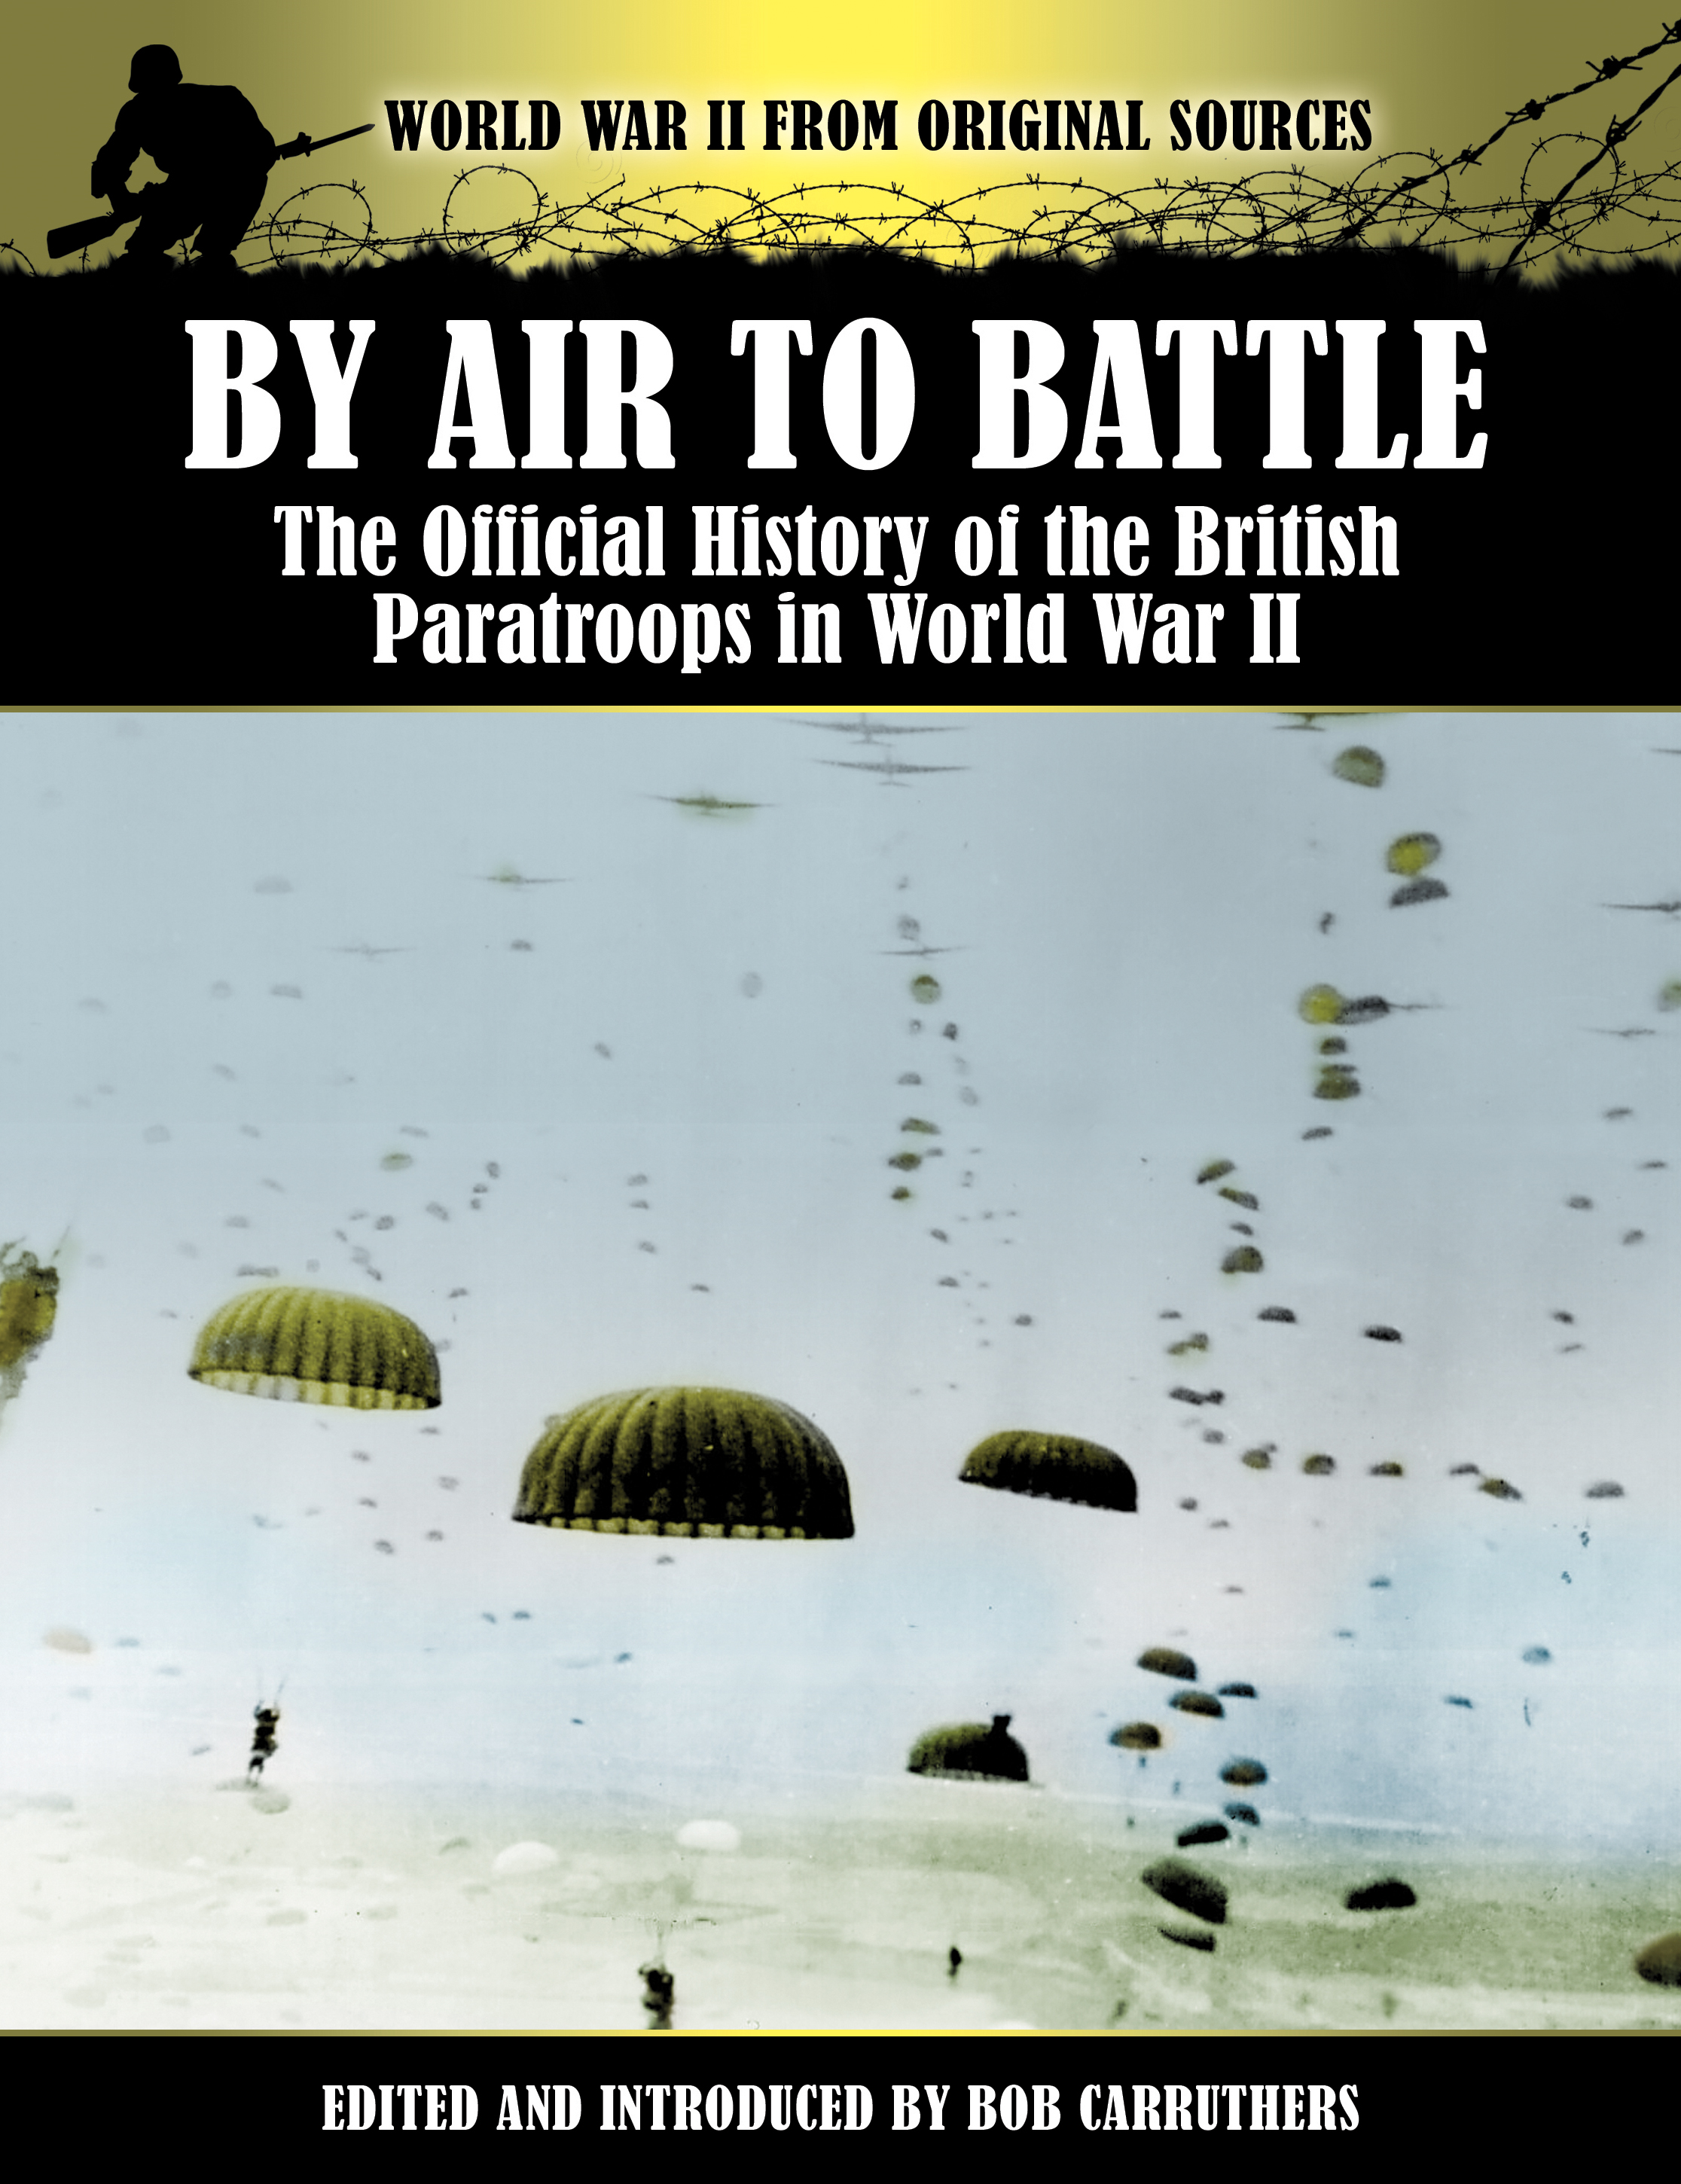 By Air to Battle - The Official History of the British Paratroops in World War II